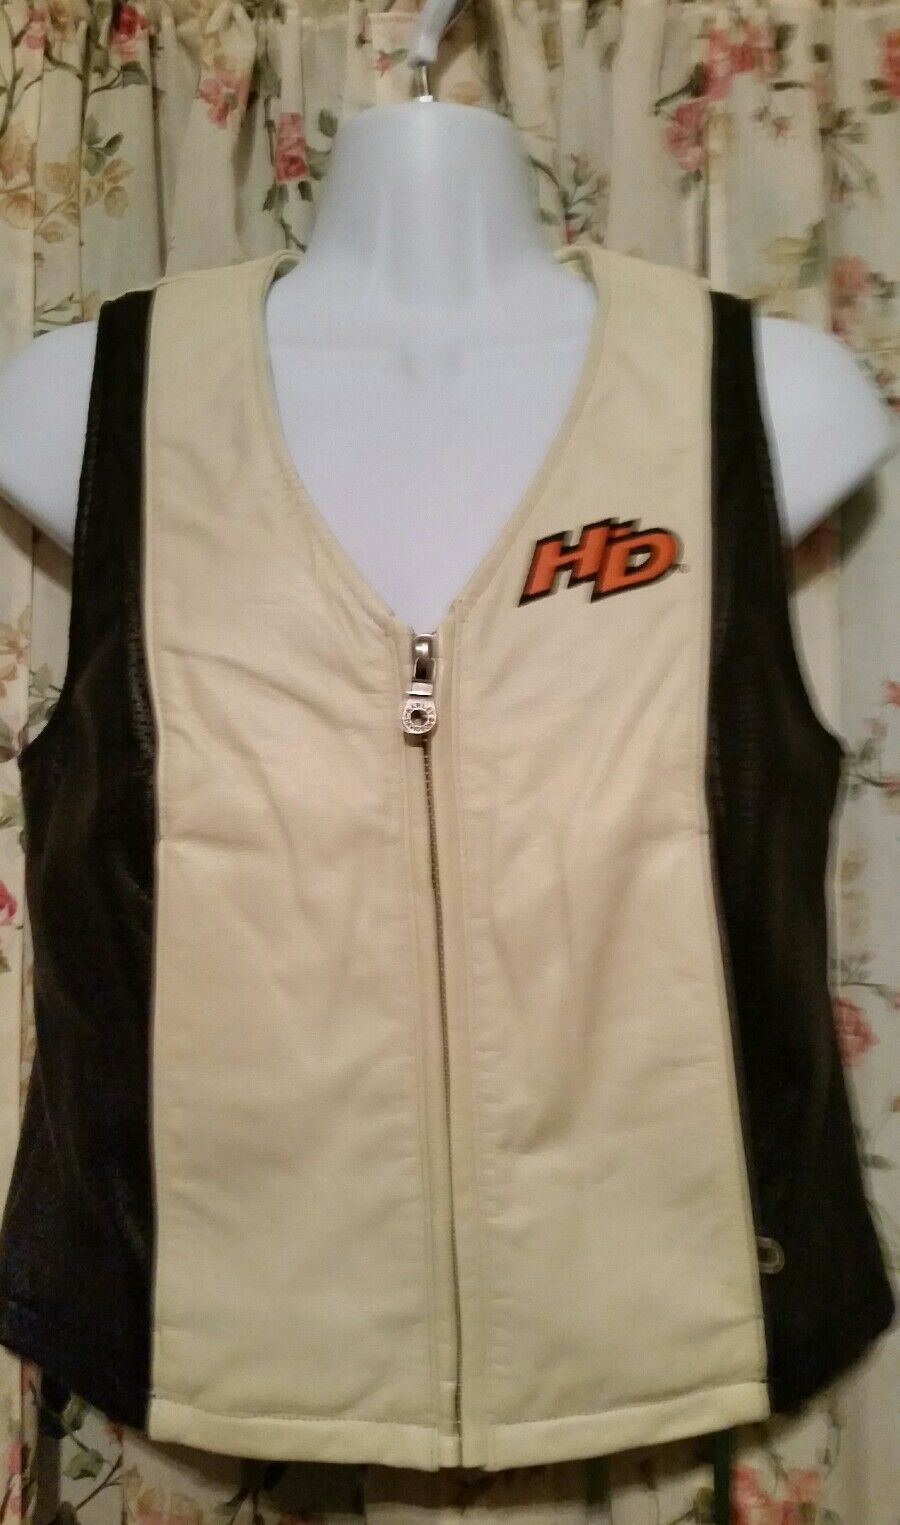 HARLEY DAVIDSON WOMENS LEATHER VEST NEW XS S FREE TOP & PANTY REDUCED NWOT